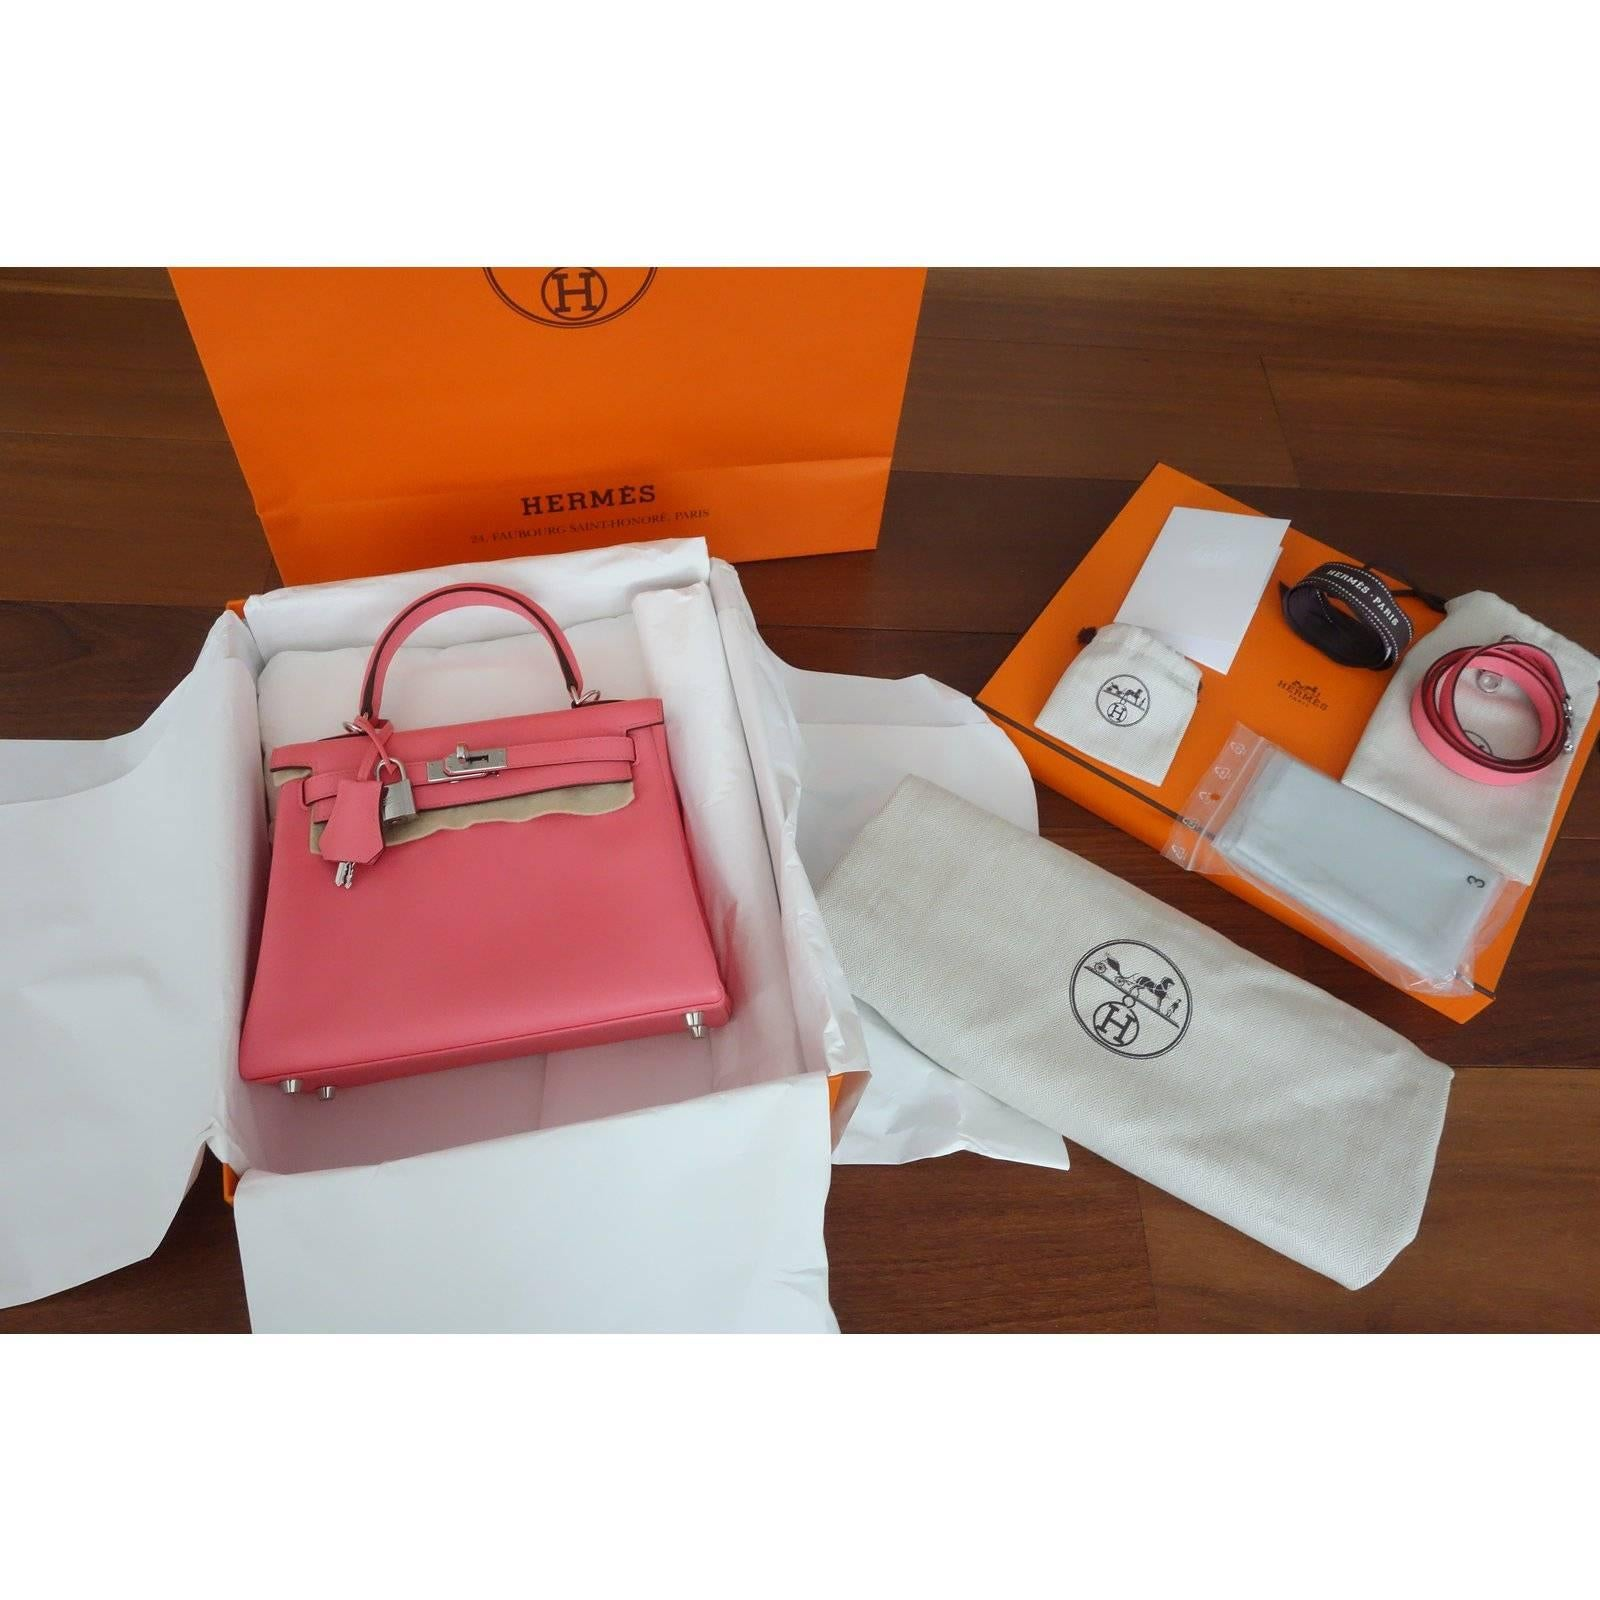 bbb66f0878da Hermès Veau Swift Rose Azalee Phw 25 cm Full Set Kelly II retourne Handbag  at 1stdibs